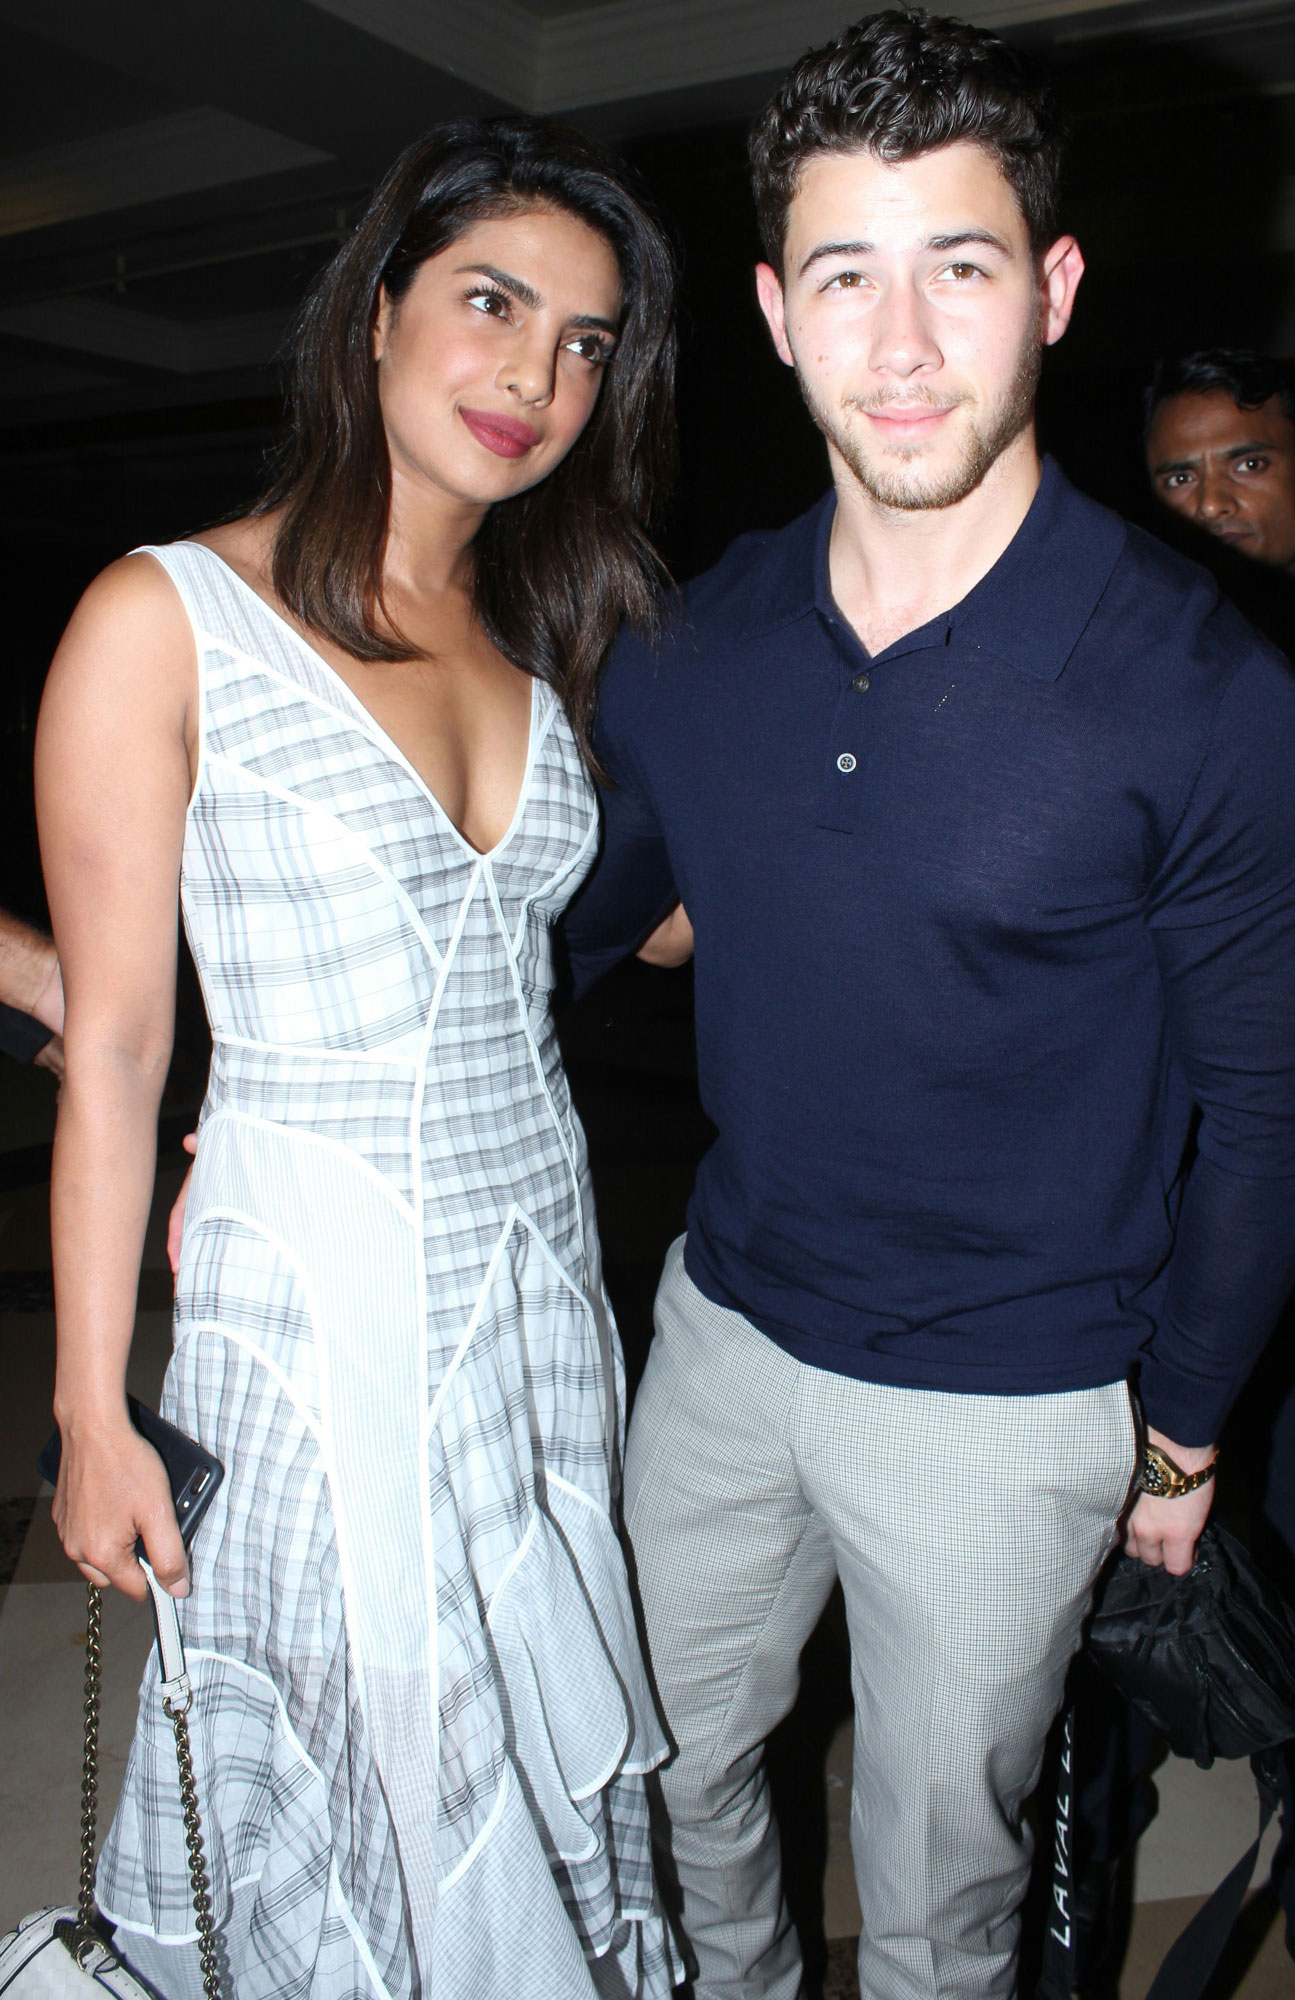 Priyanka Chopra and Nick Jonas seen out on dinner date at JW Marriott, Mumbai